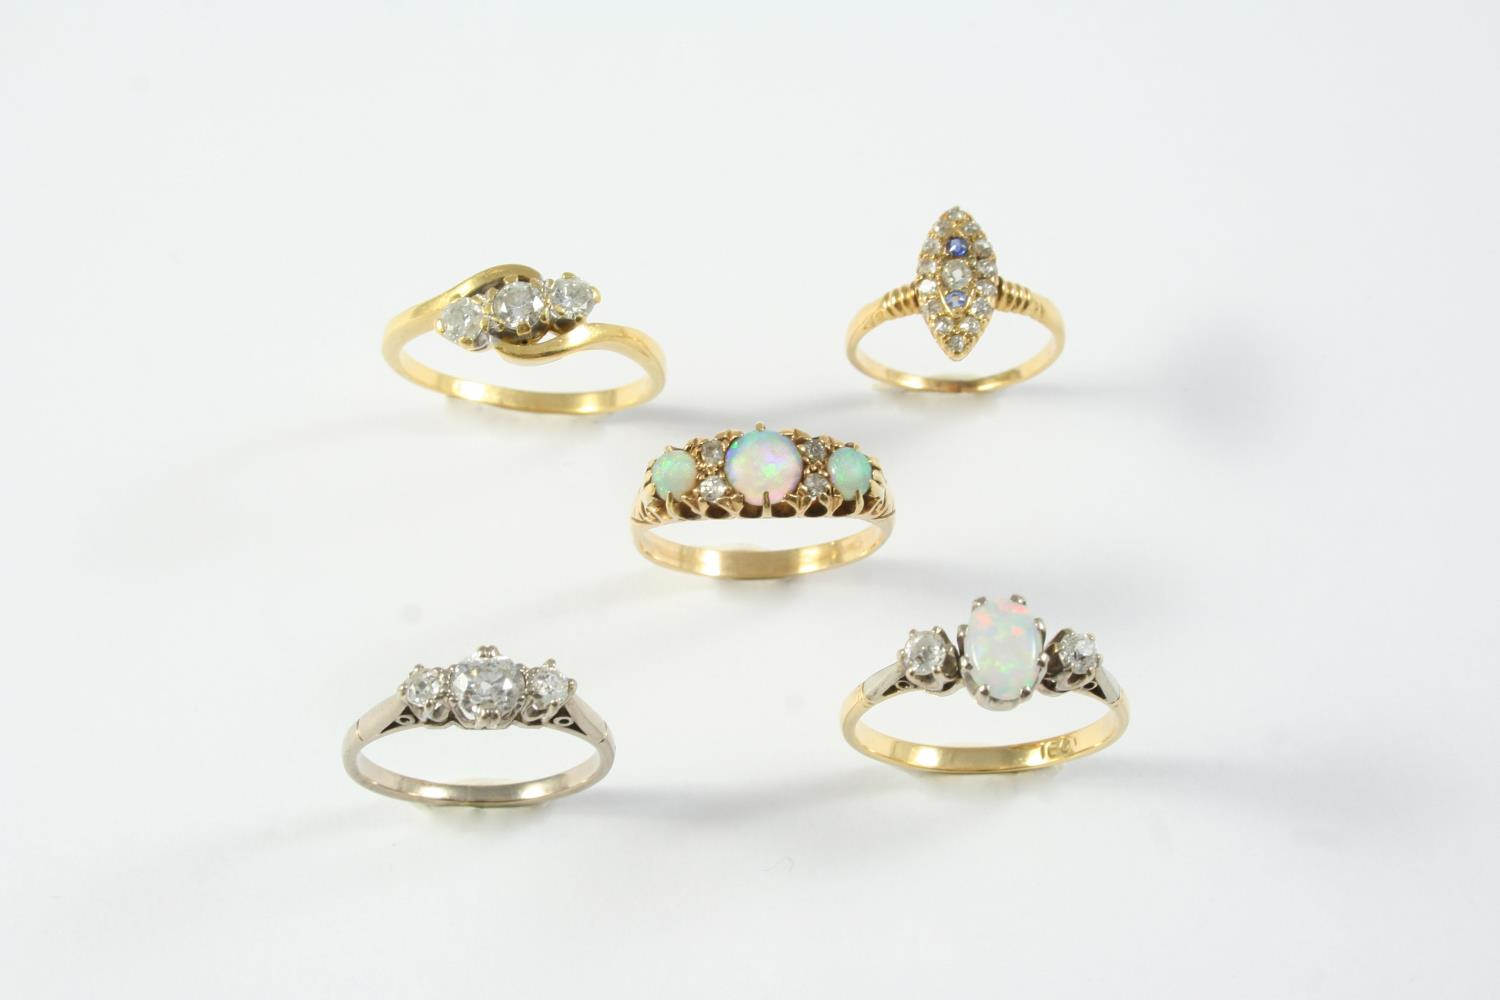 AN OPAL AND DIAMOND THREE STONE RING the oval-shaped solid white opal is set with two circular-cut